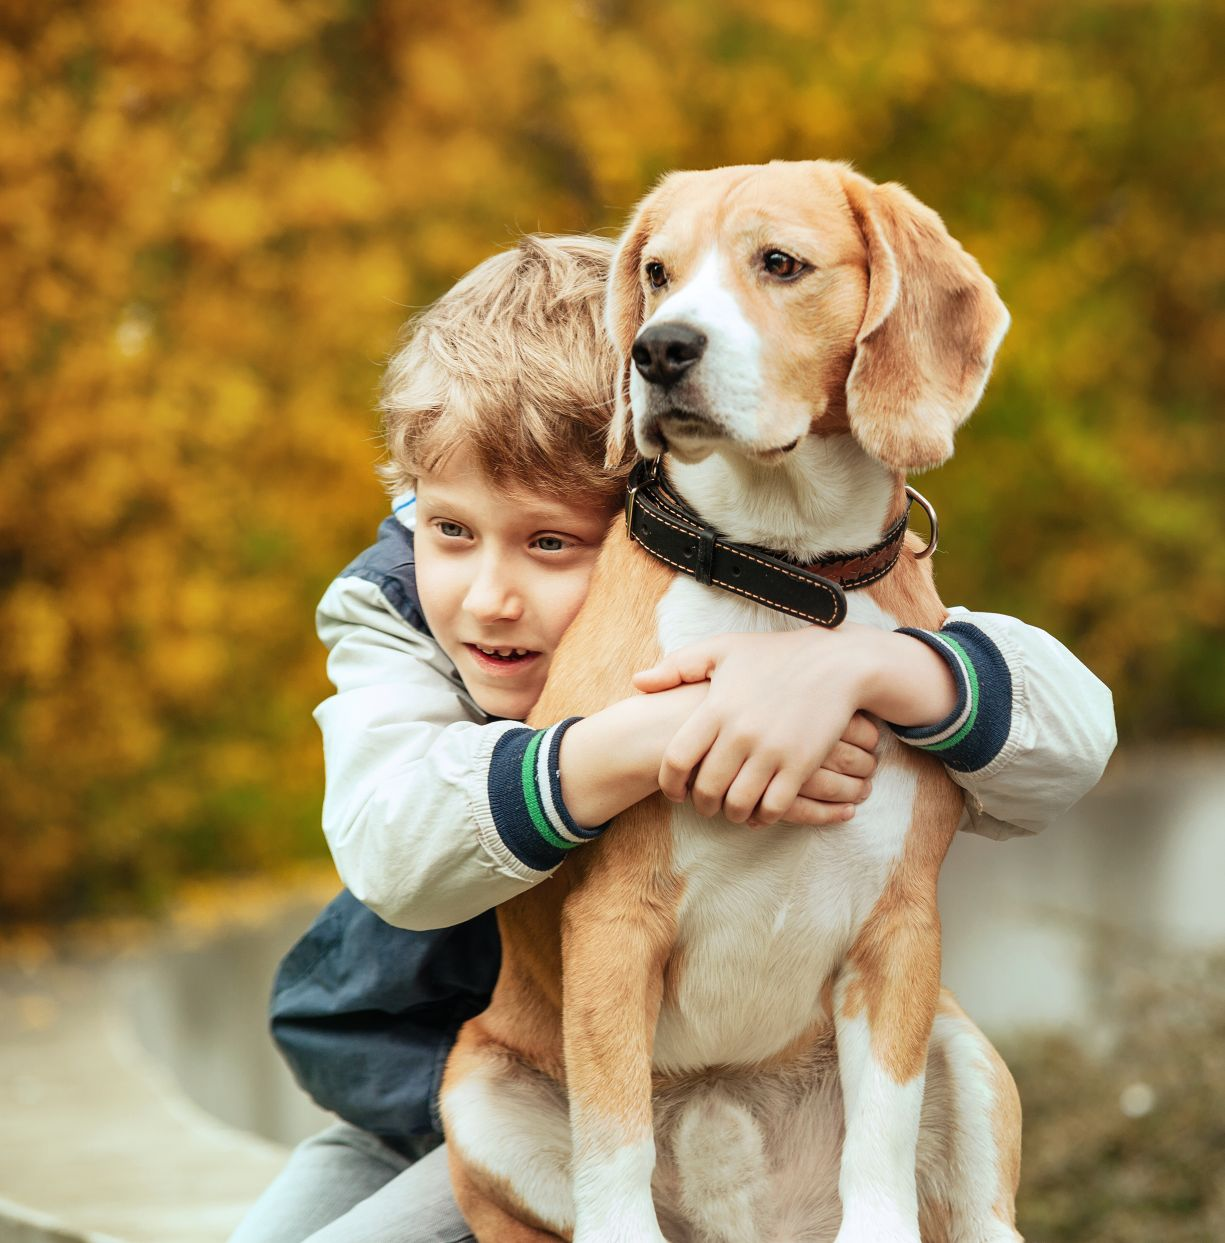 Young boy with arms around dog.